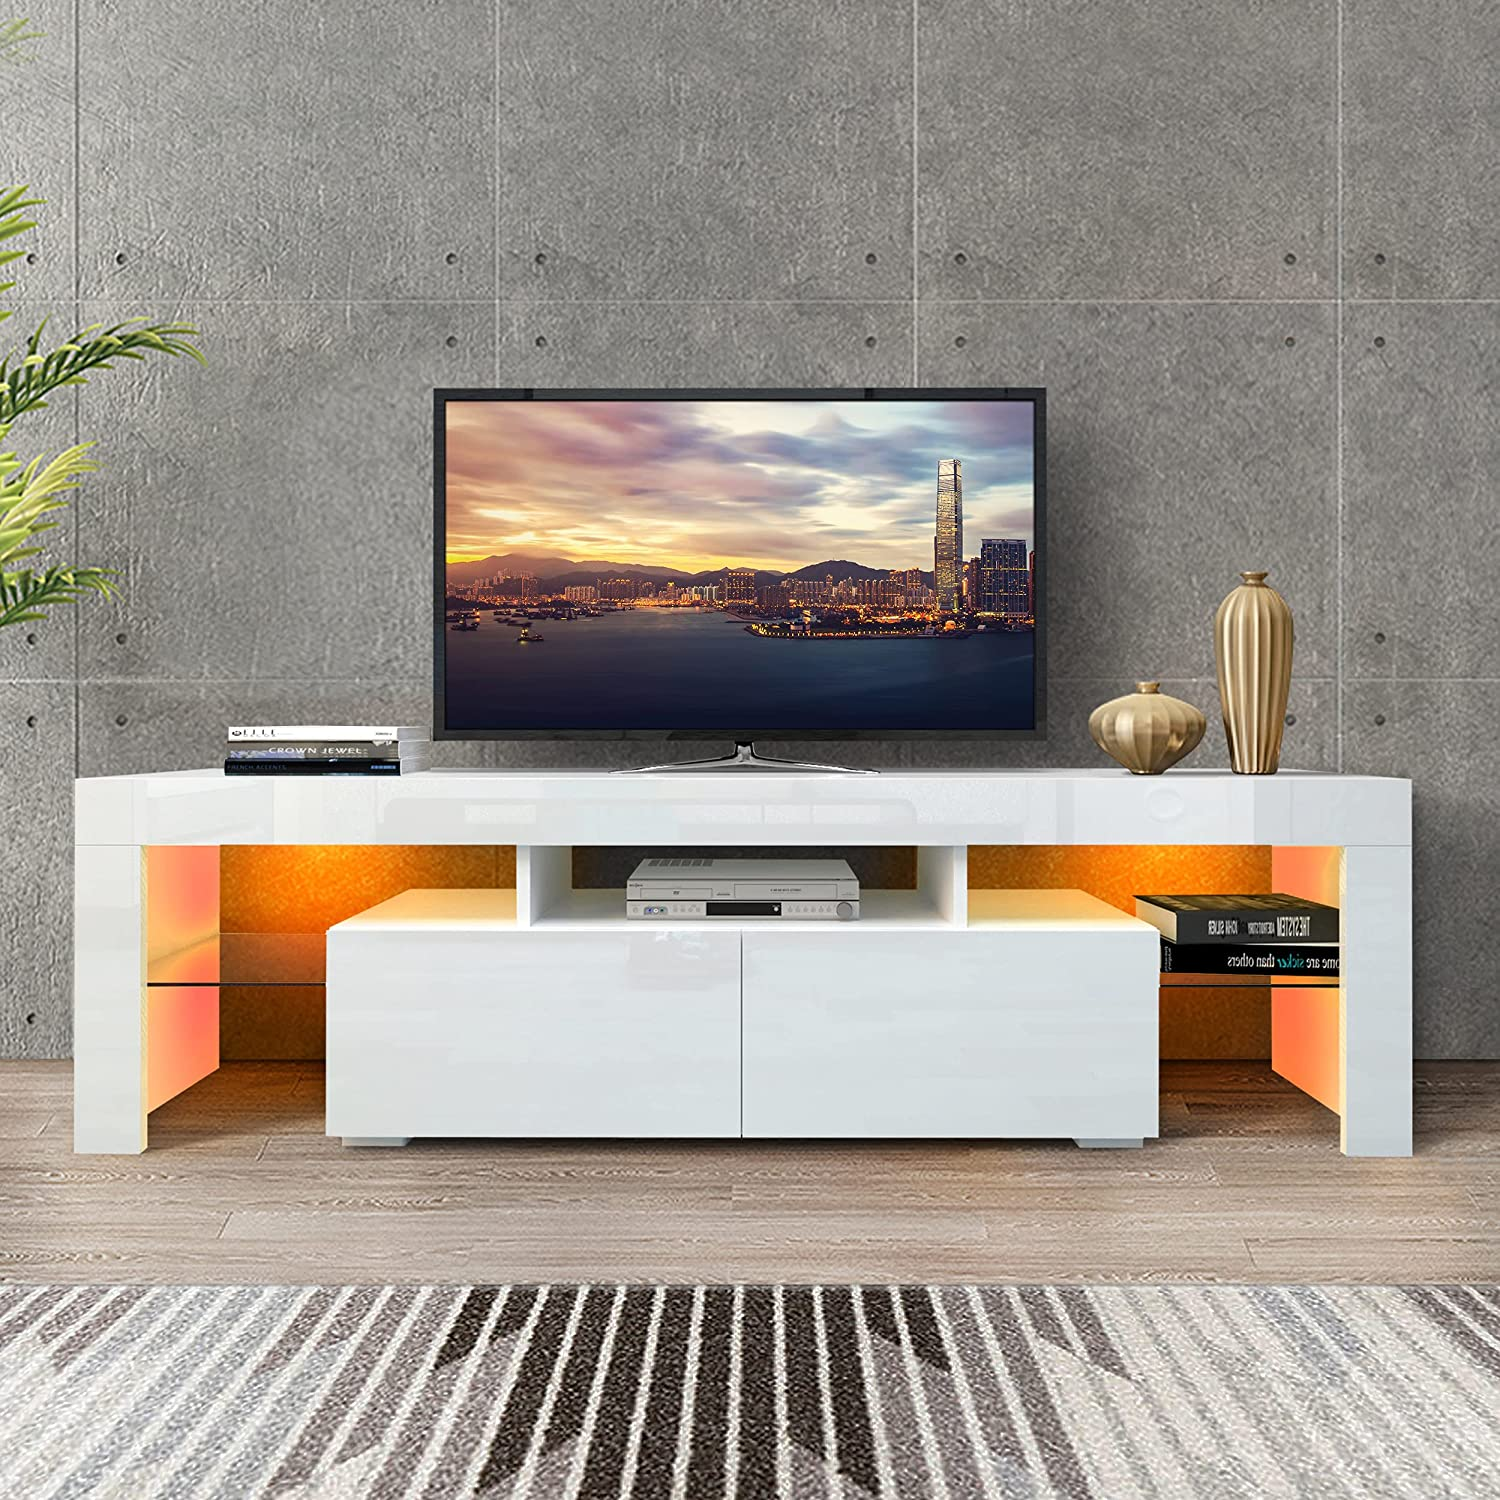 DMAITH TV Stand with LED Lights, 2 Drawers and Open Shelves High Gloss Entertainment Center Media Console Table Storage Desk for Up to 70 Inch TV, White (003W)